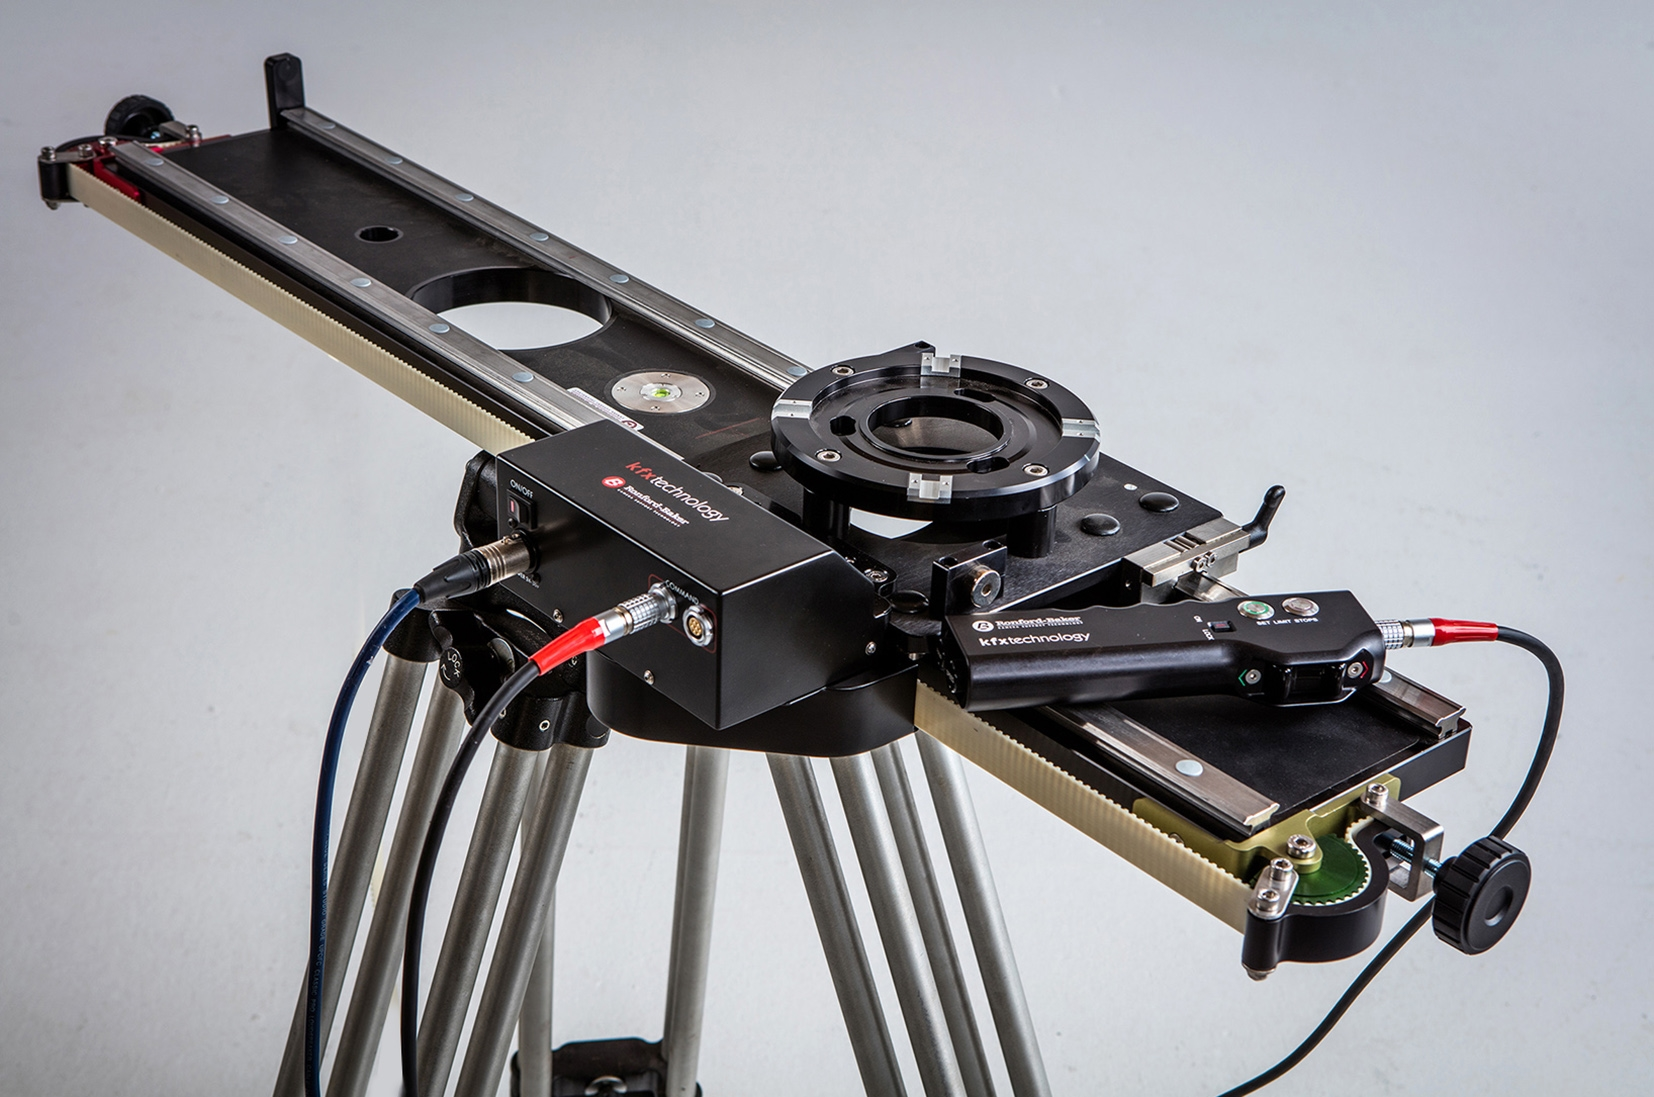 KFX Technology will launch their new high end motorised slider at the BSC Expo 2016 on the Ronford Baker stand, #209.